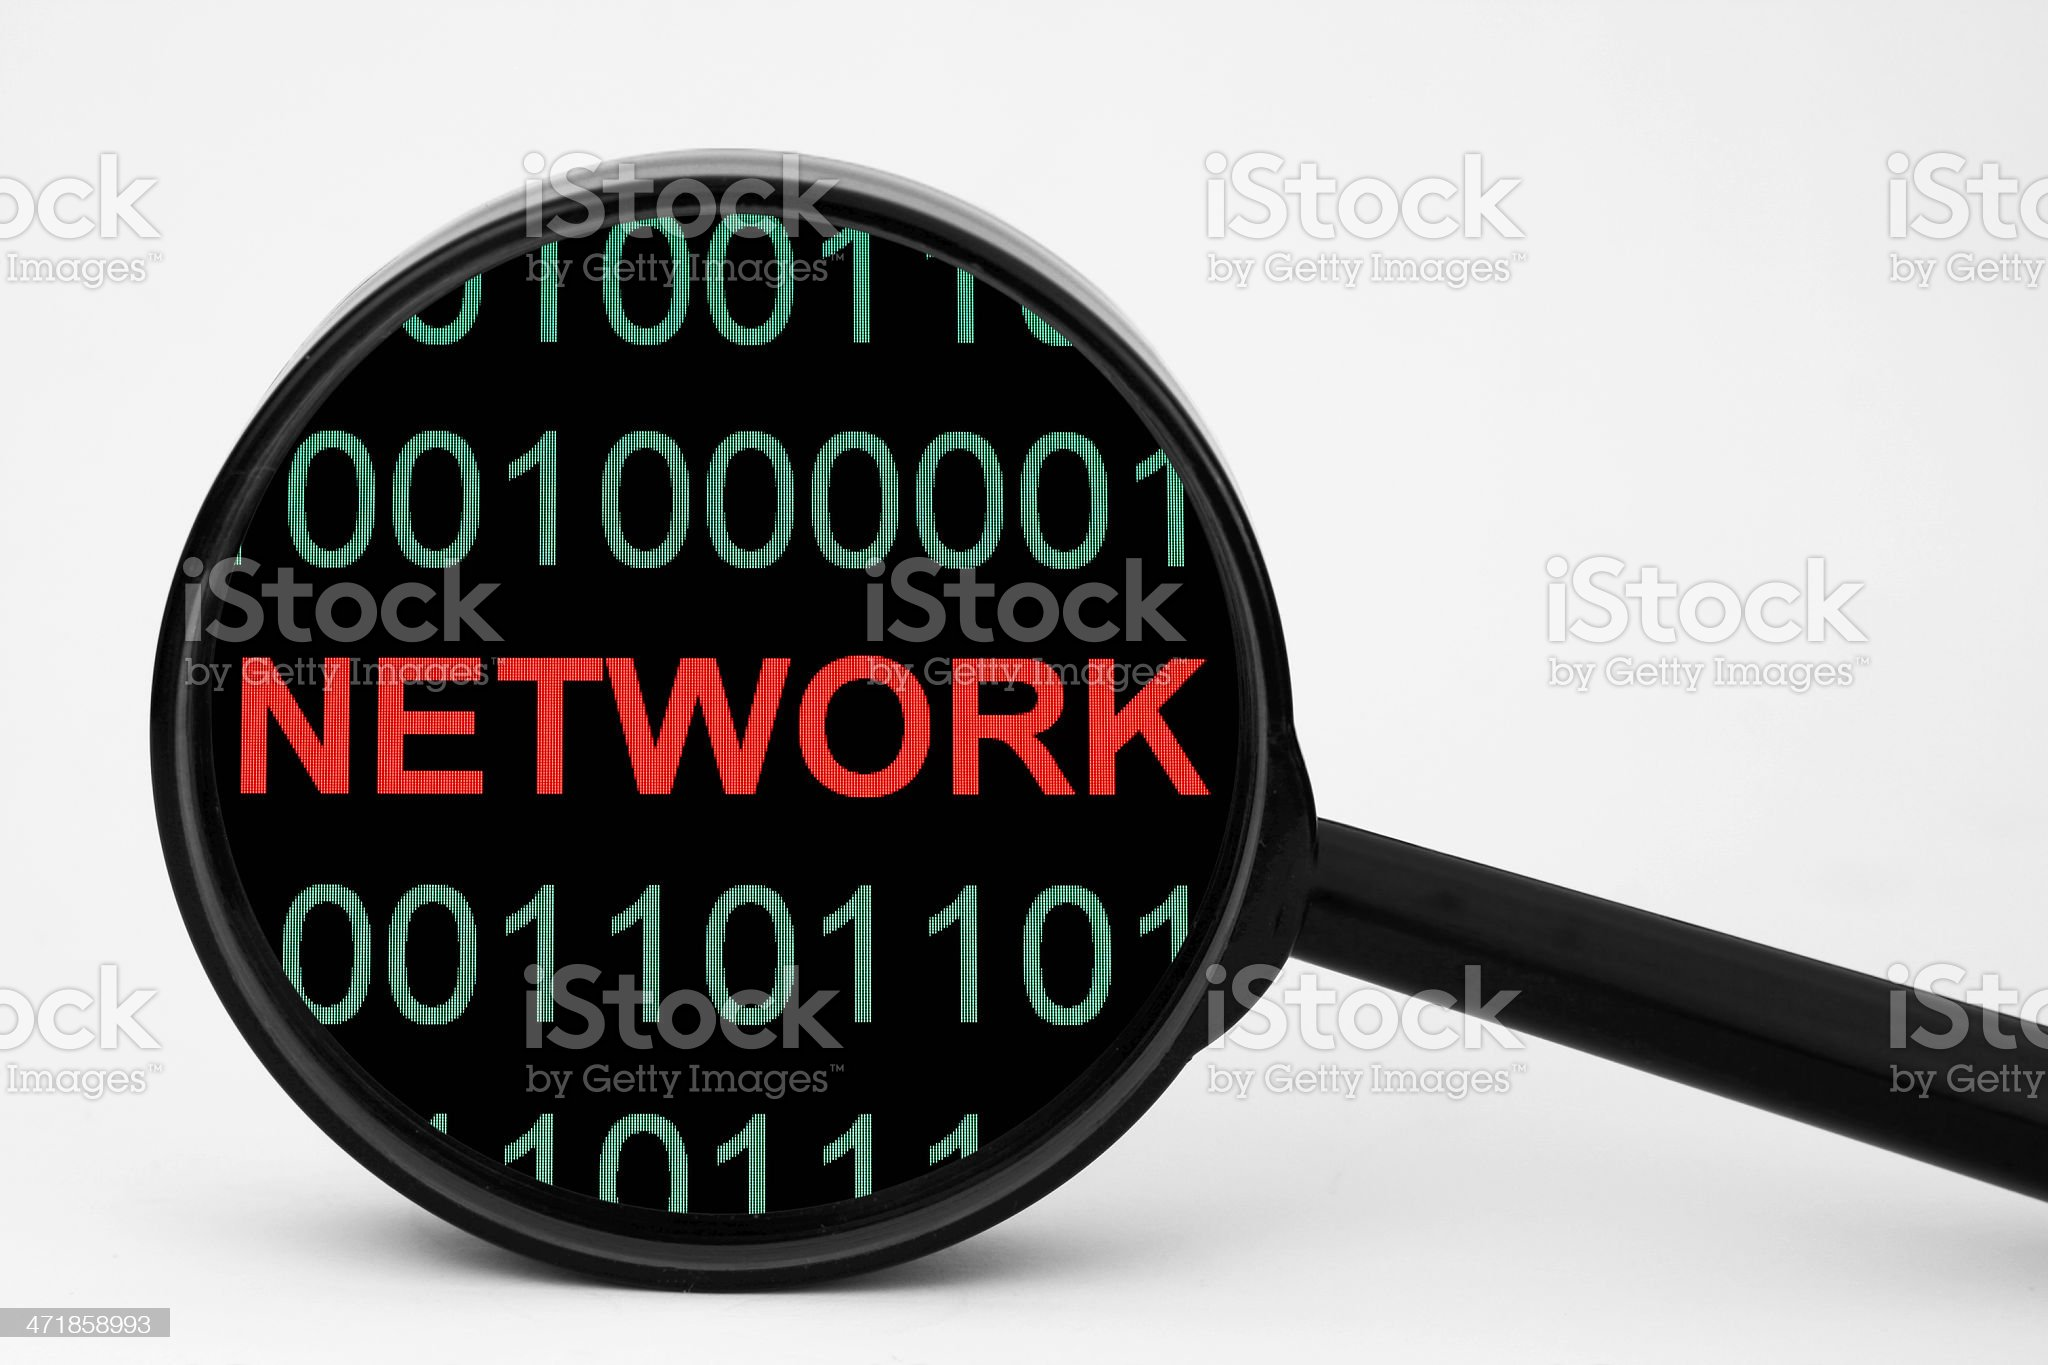 Network royalty-free stock photo